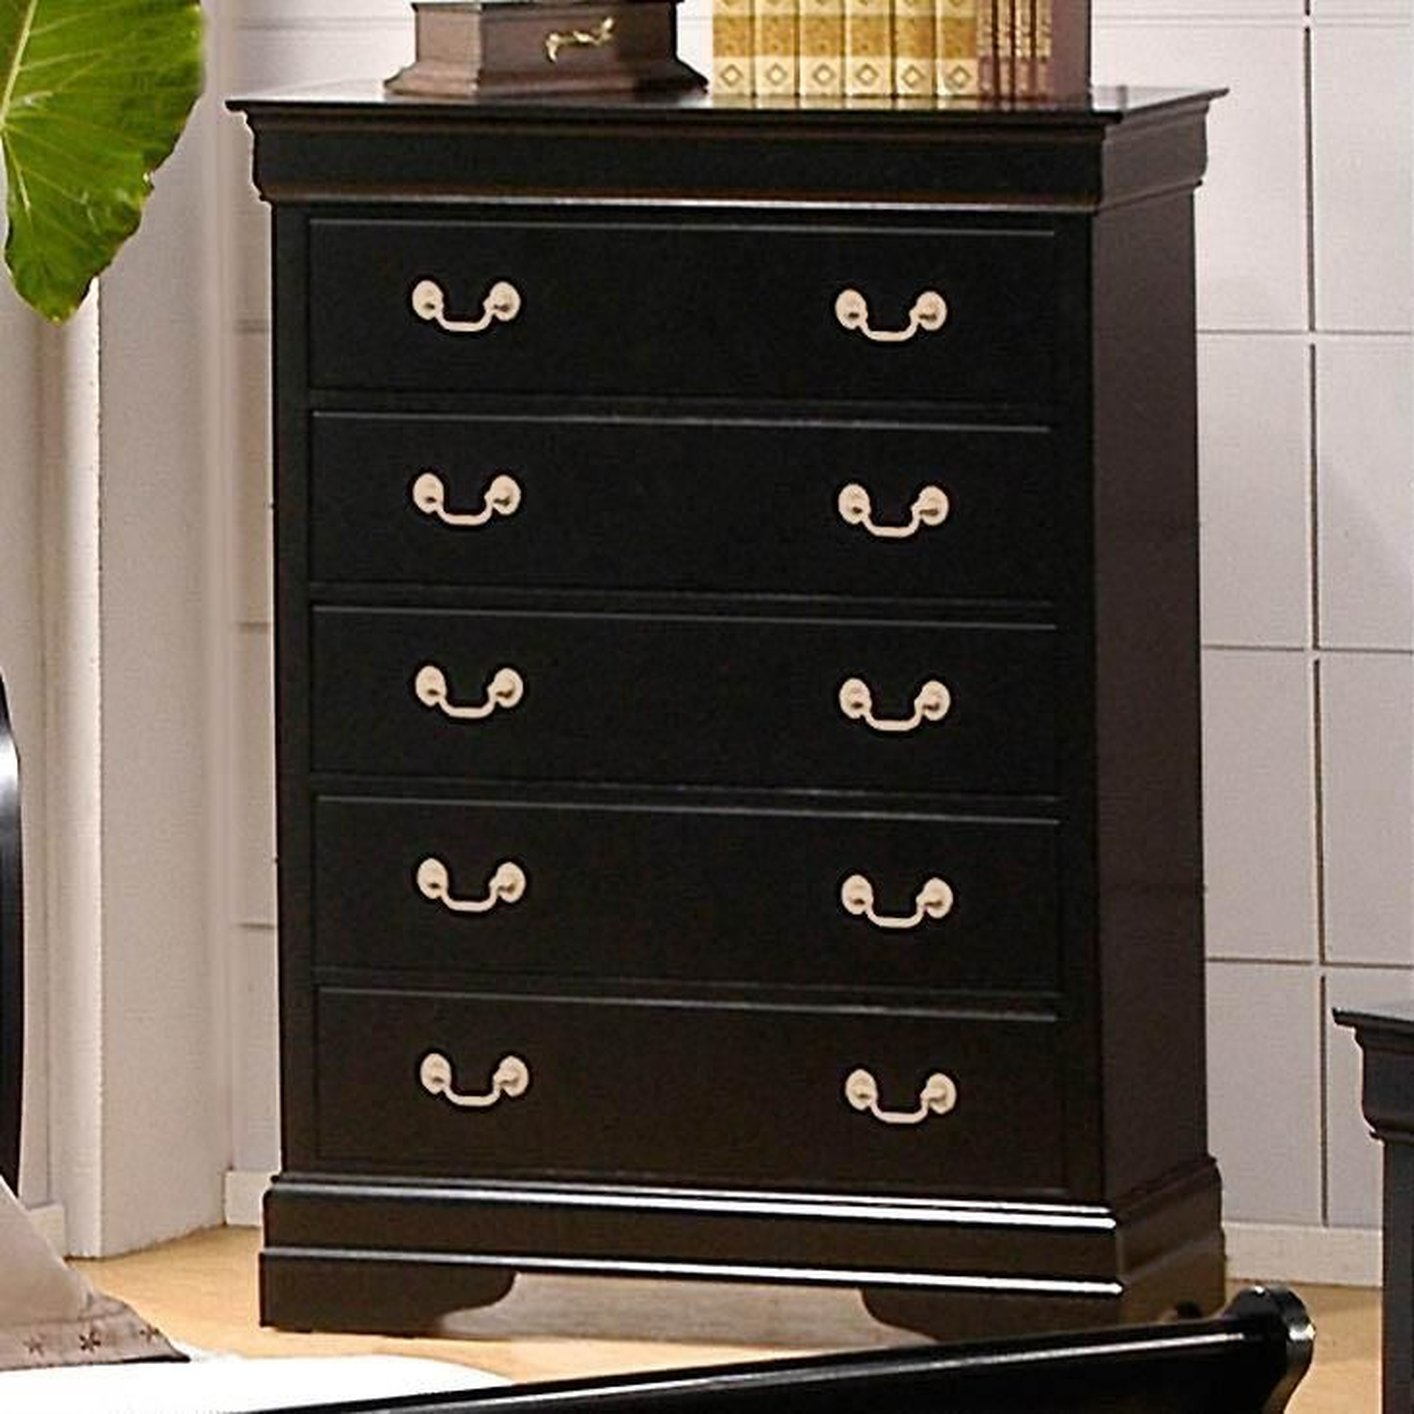 Superb img of Furniture Wood Storage Drawers Clothes Black Img 0 Img 1 Black Drawer  with #4E5E05 color and 1414x1414 pixels